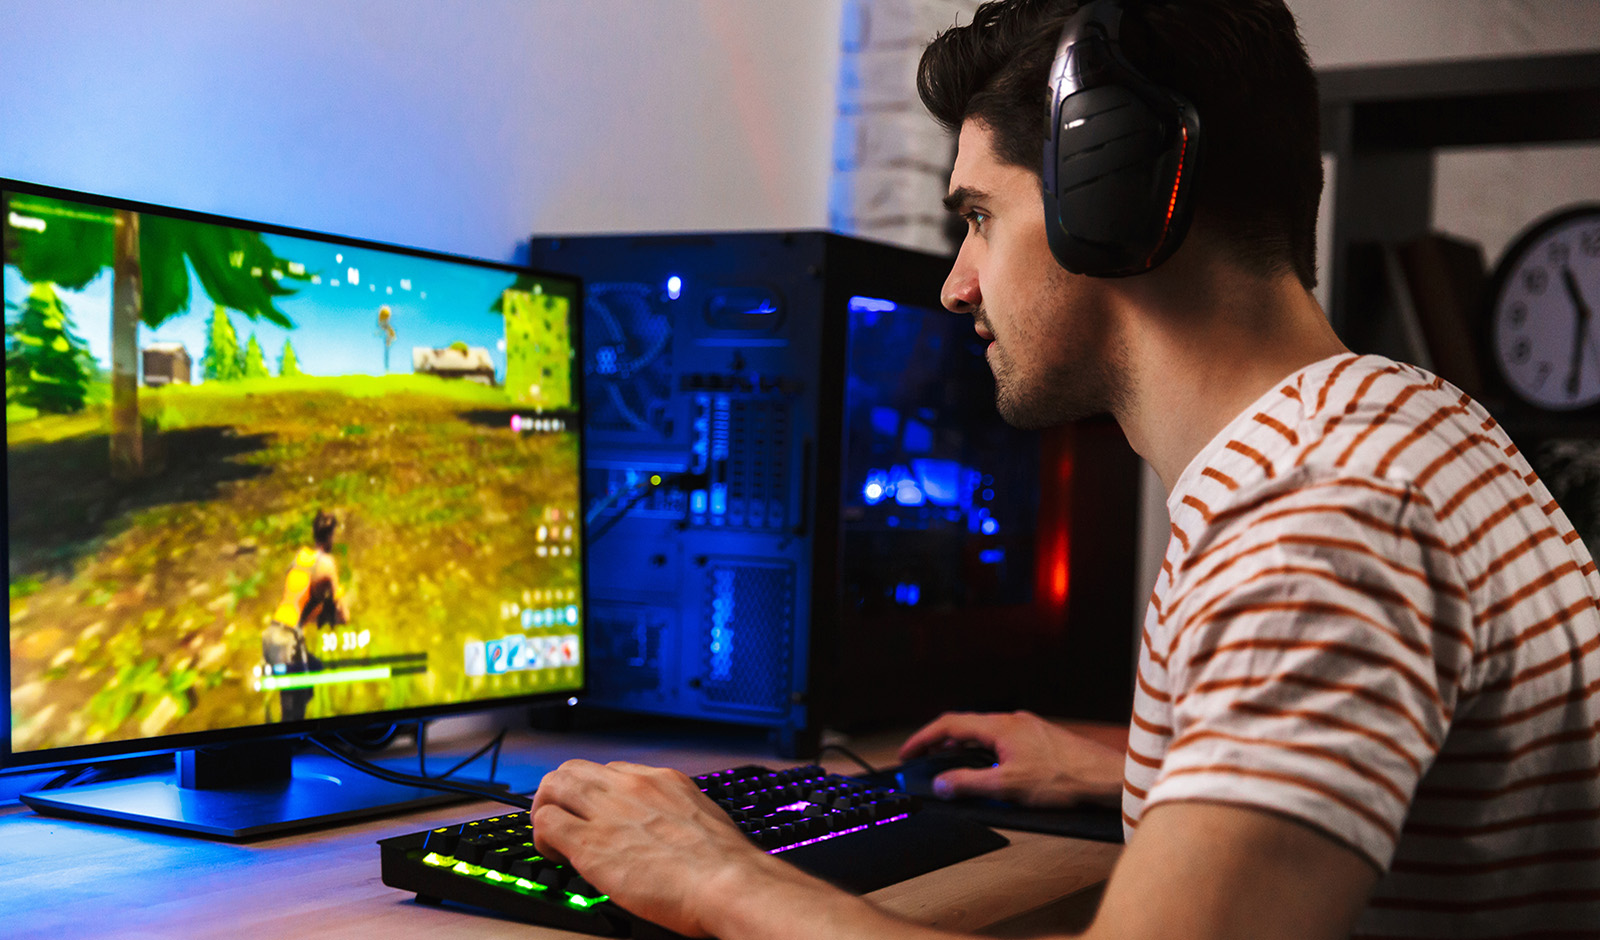 who-knew-gaming-would-be-so-popular-on-youtube-person-playing-an-online-game